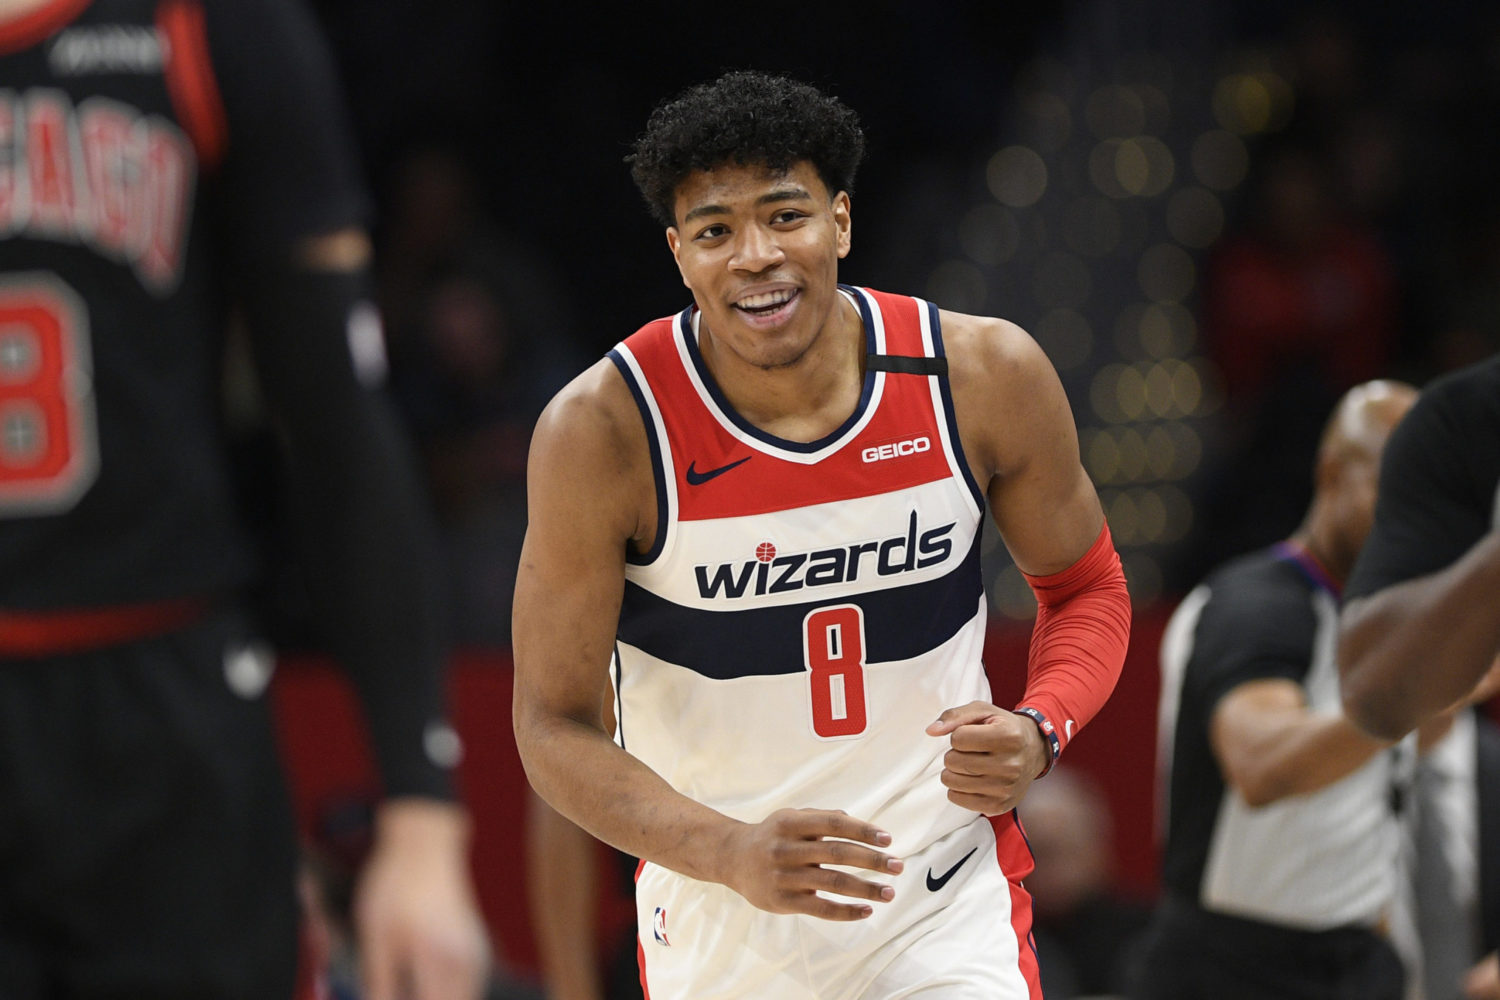 The Wizards Launched A Hebrew Twitter Account To Welcome Israeli Player Deni Avdija Washingtonian